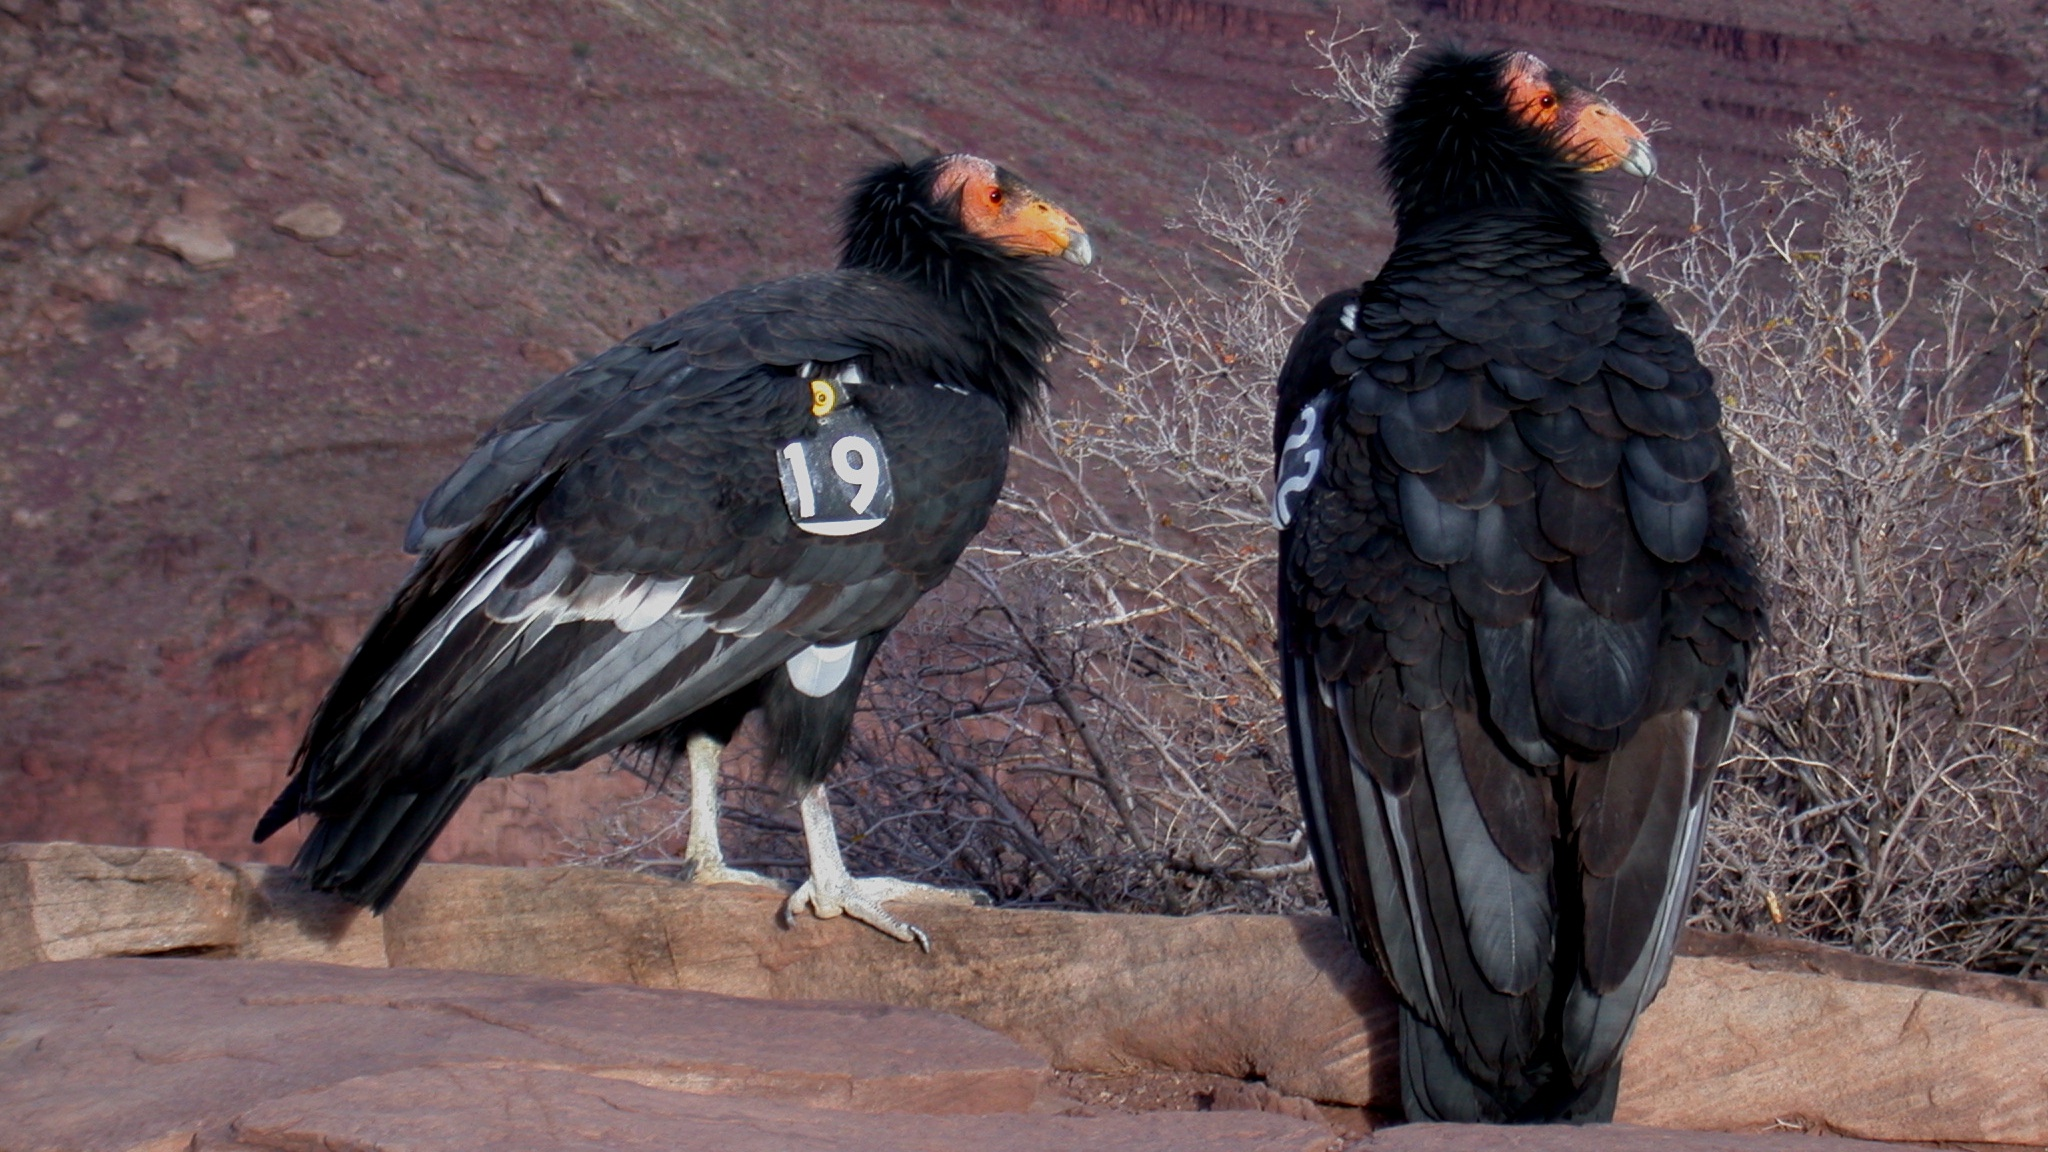 2 condors perched on a rock